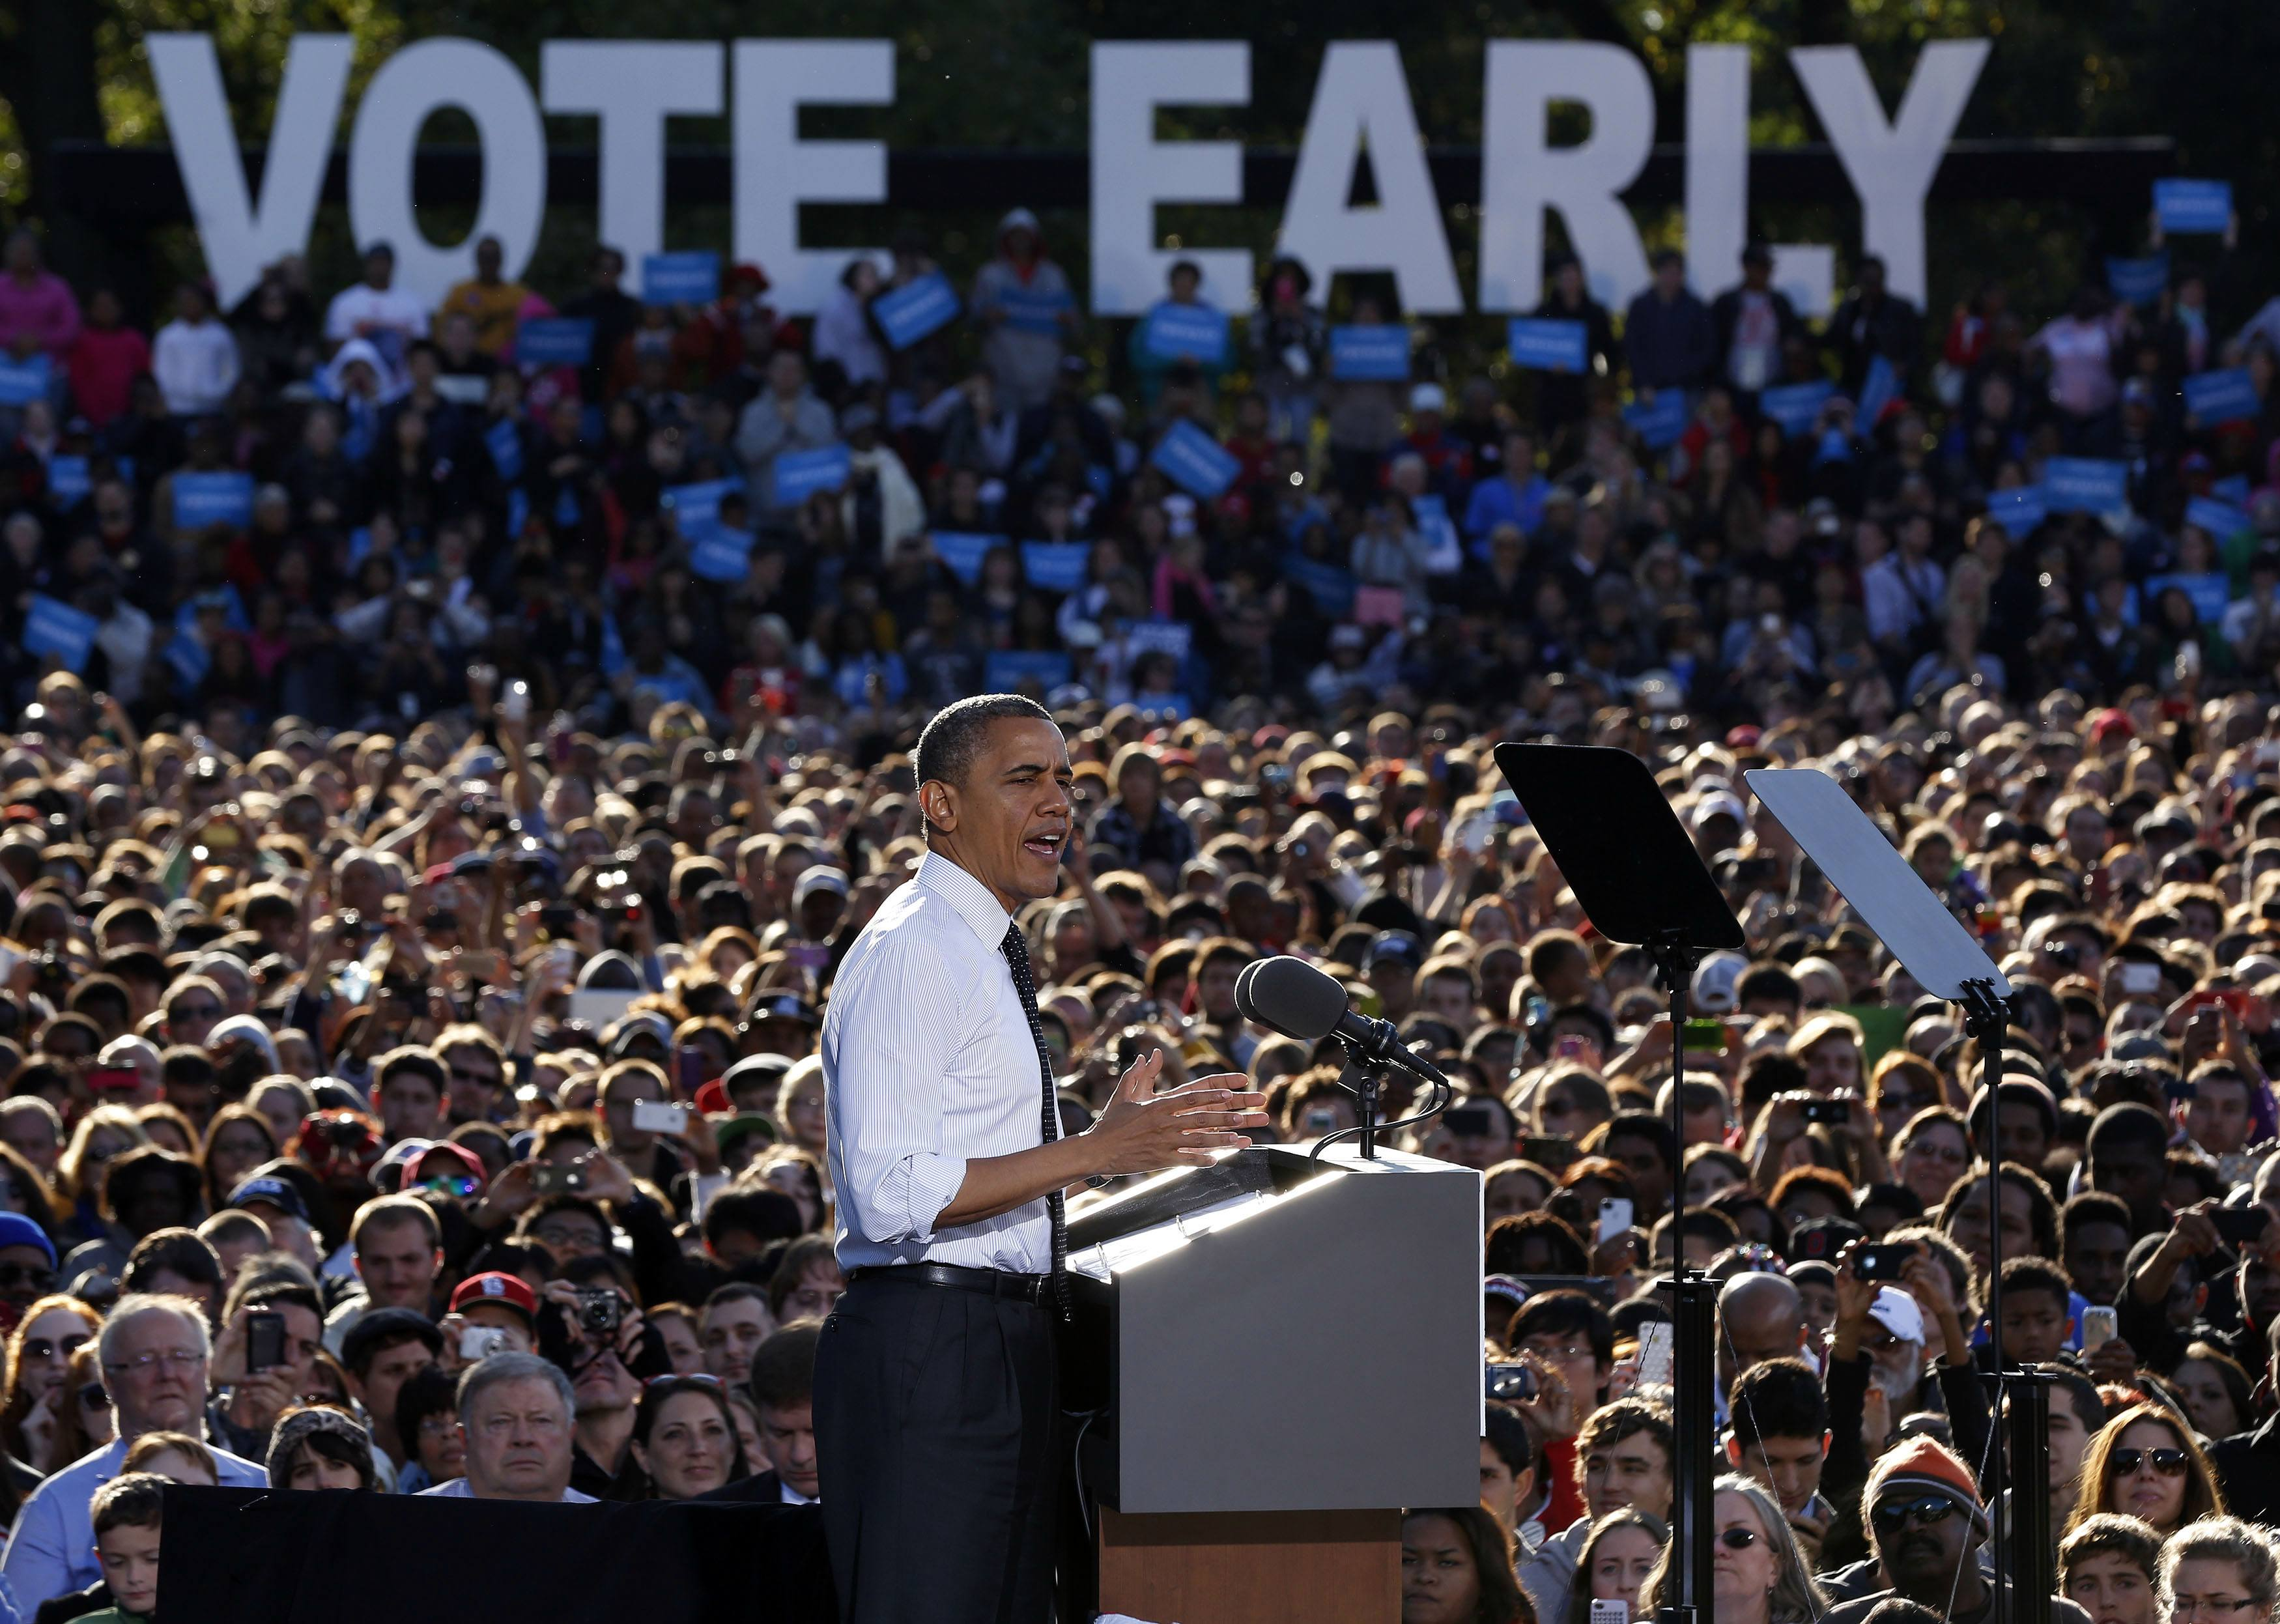 President Barack Obama speaks to a rally in The Oval at Ohio State University in Columbus, Ohio. (Larry Downing/Reuters)